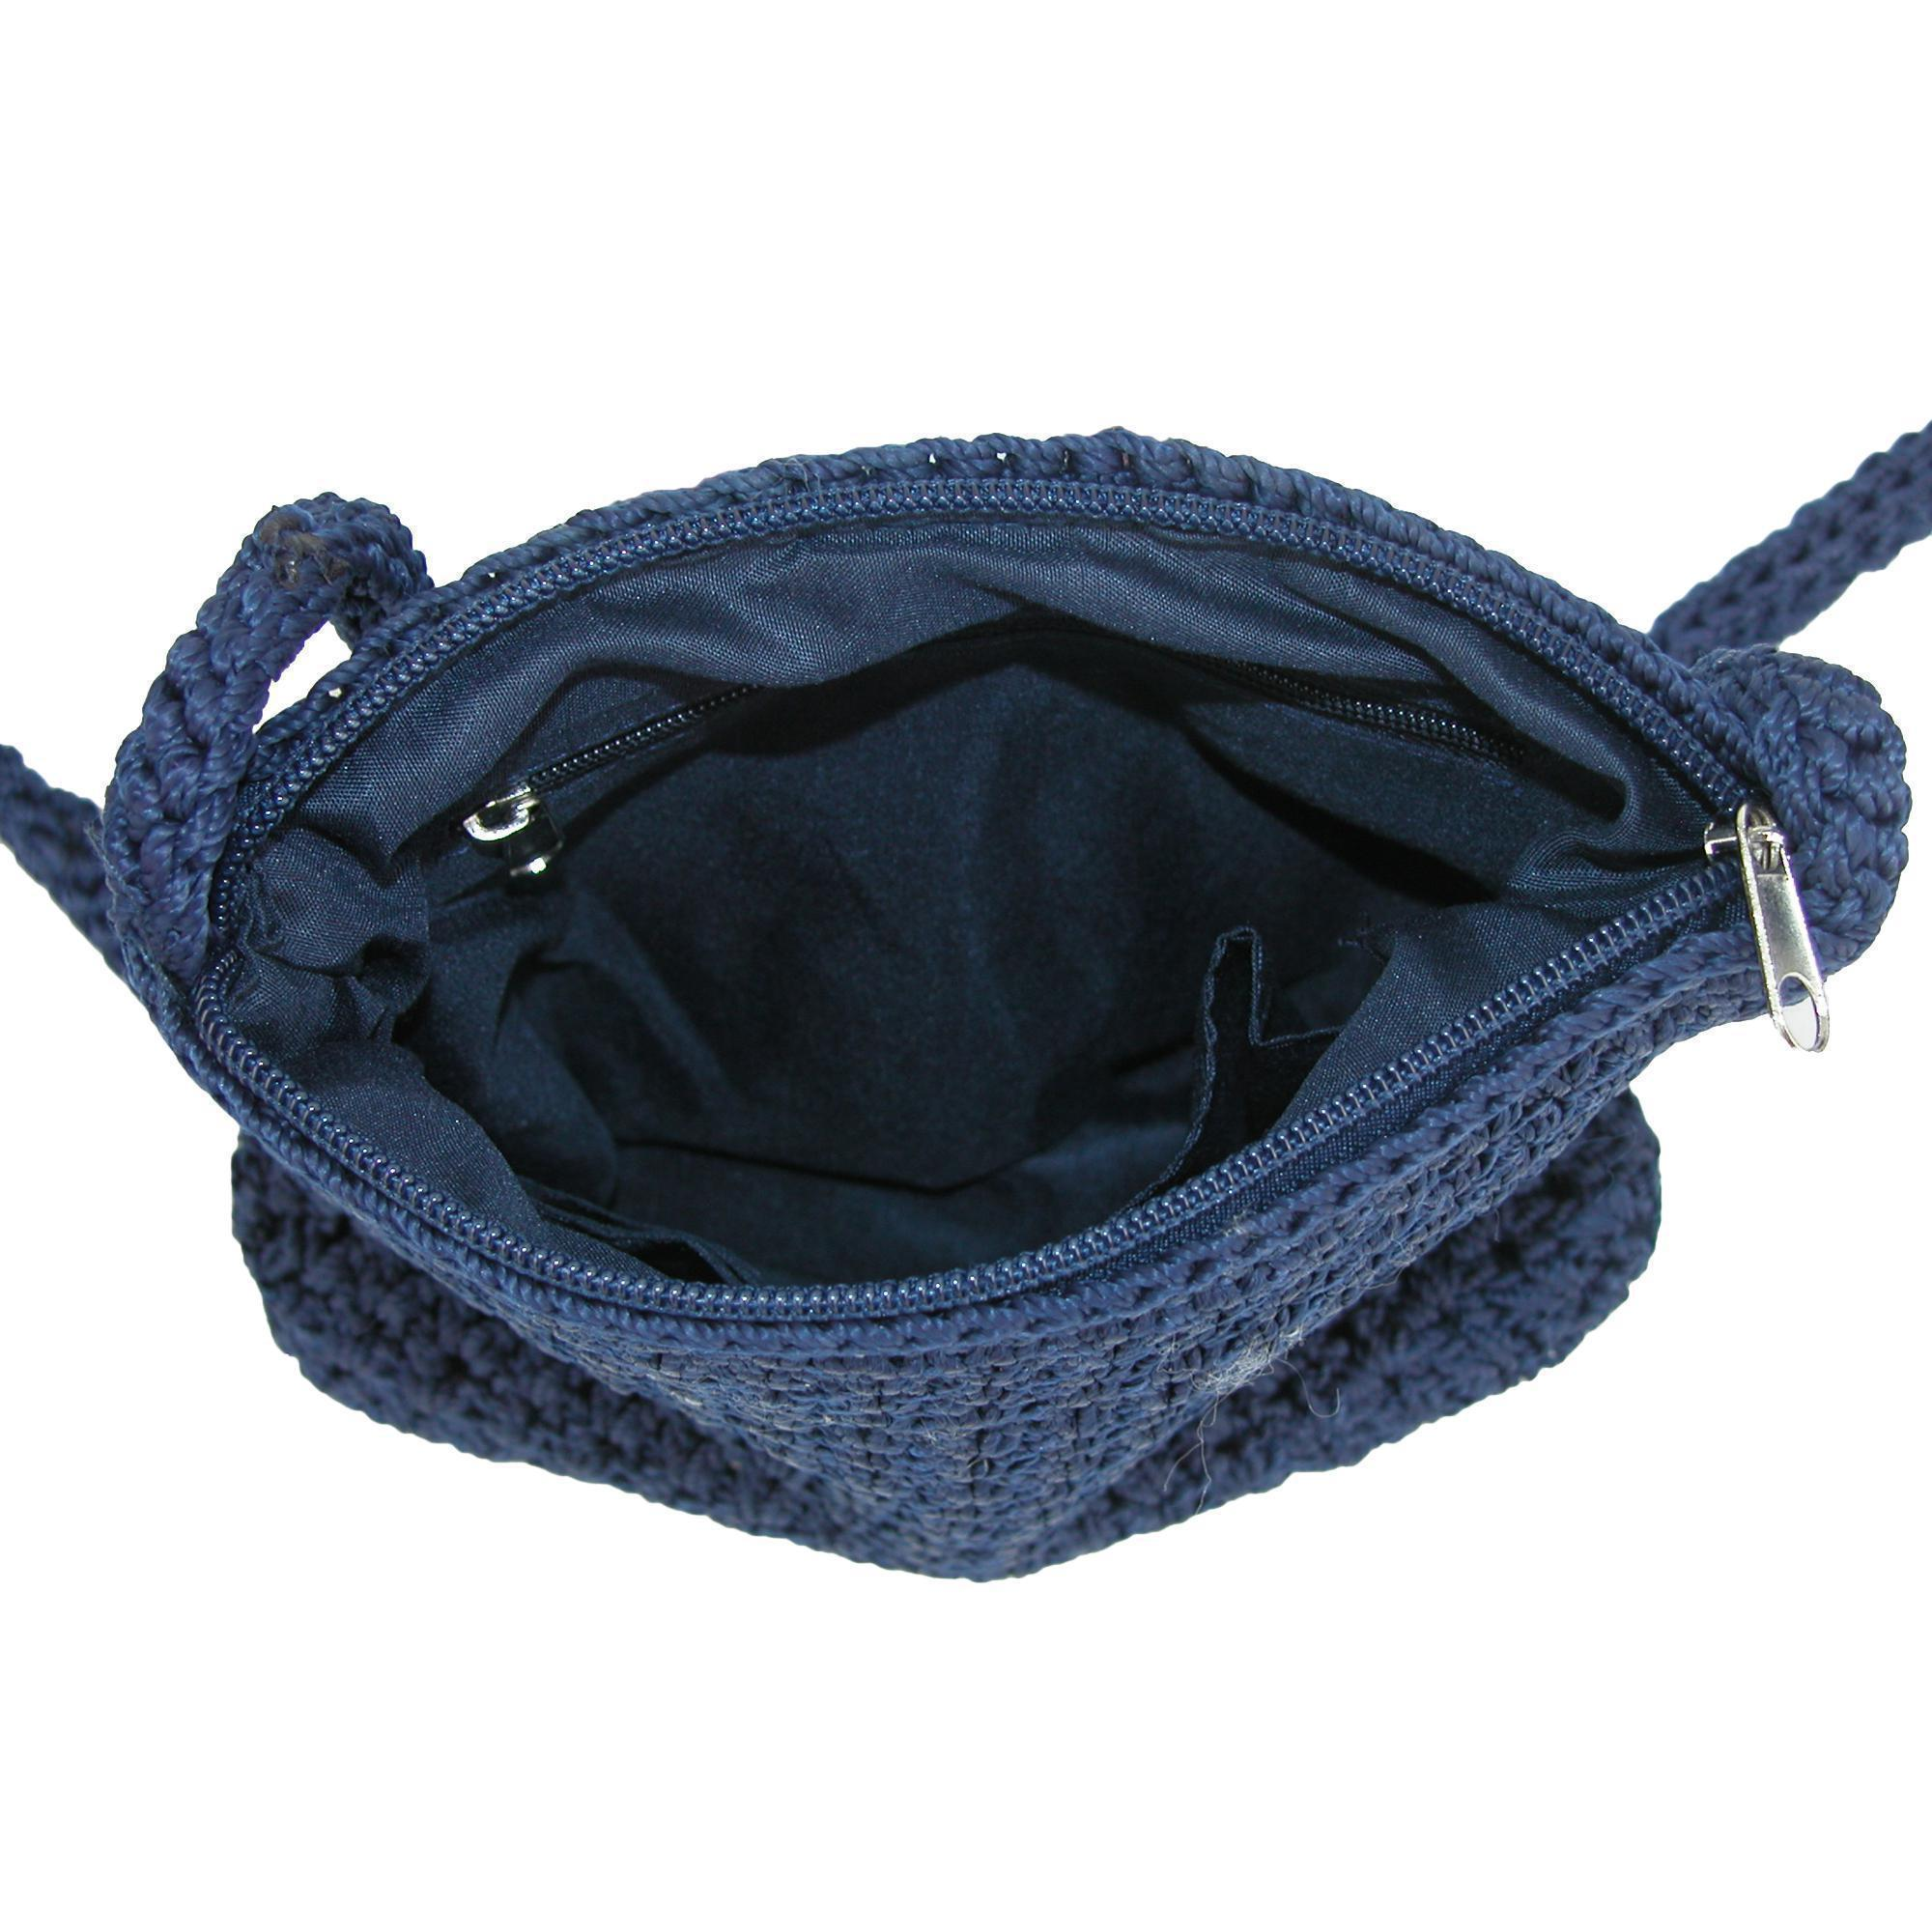 New-CTM-Women-039-s-Crochet-Crossbody-Handbag thumbnail 7